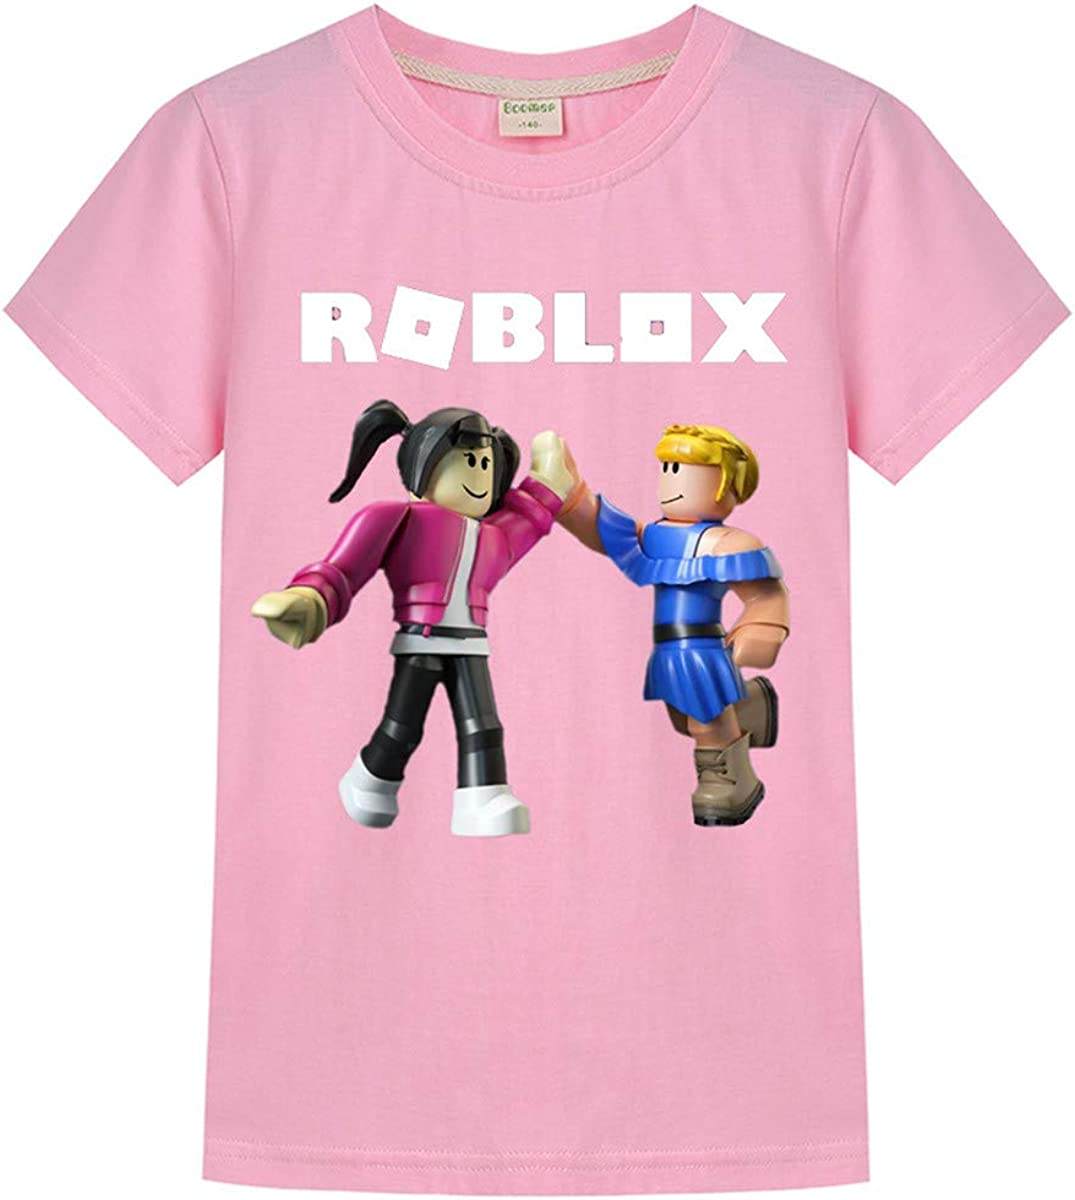 GD-Clothes Roblox Cartoon Cotton T-Shirts Roblox Summer Short Sleeves Shirts for Boys